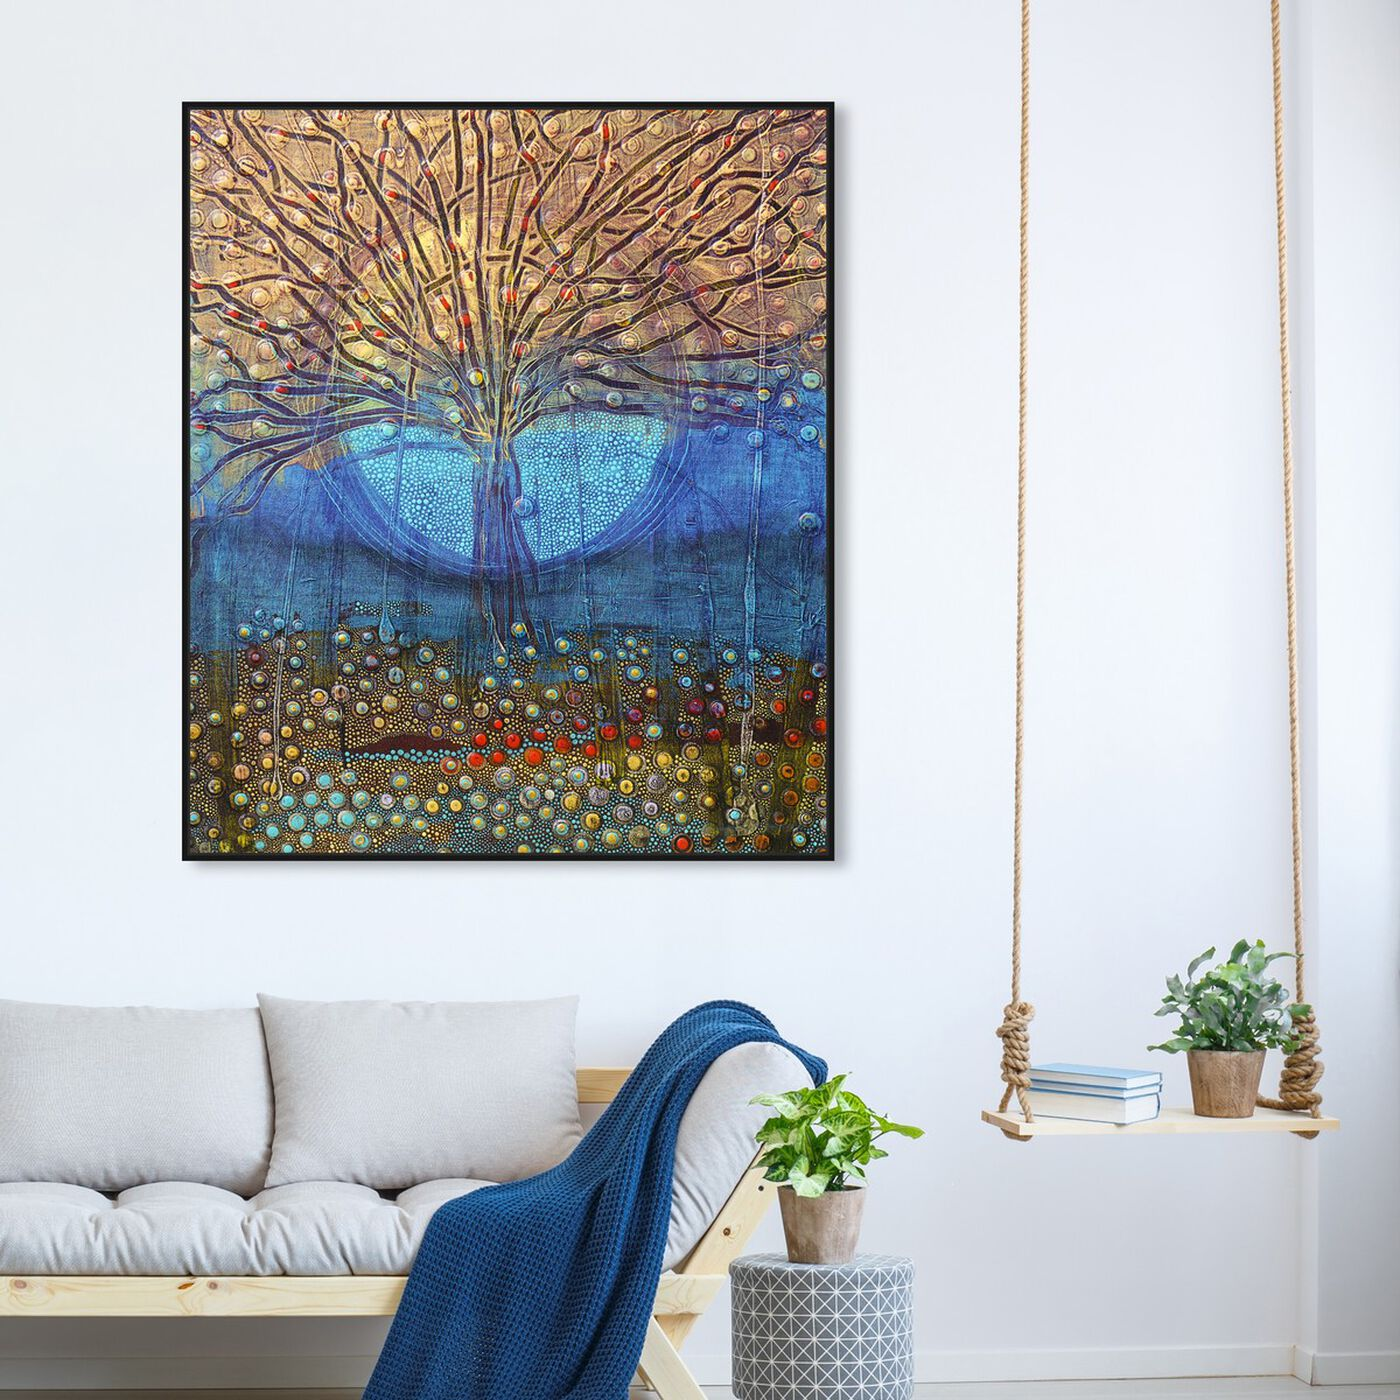 Hanging view of Enriqueta Ahrensburg - Paraiso featuring abstract and paint art.